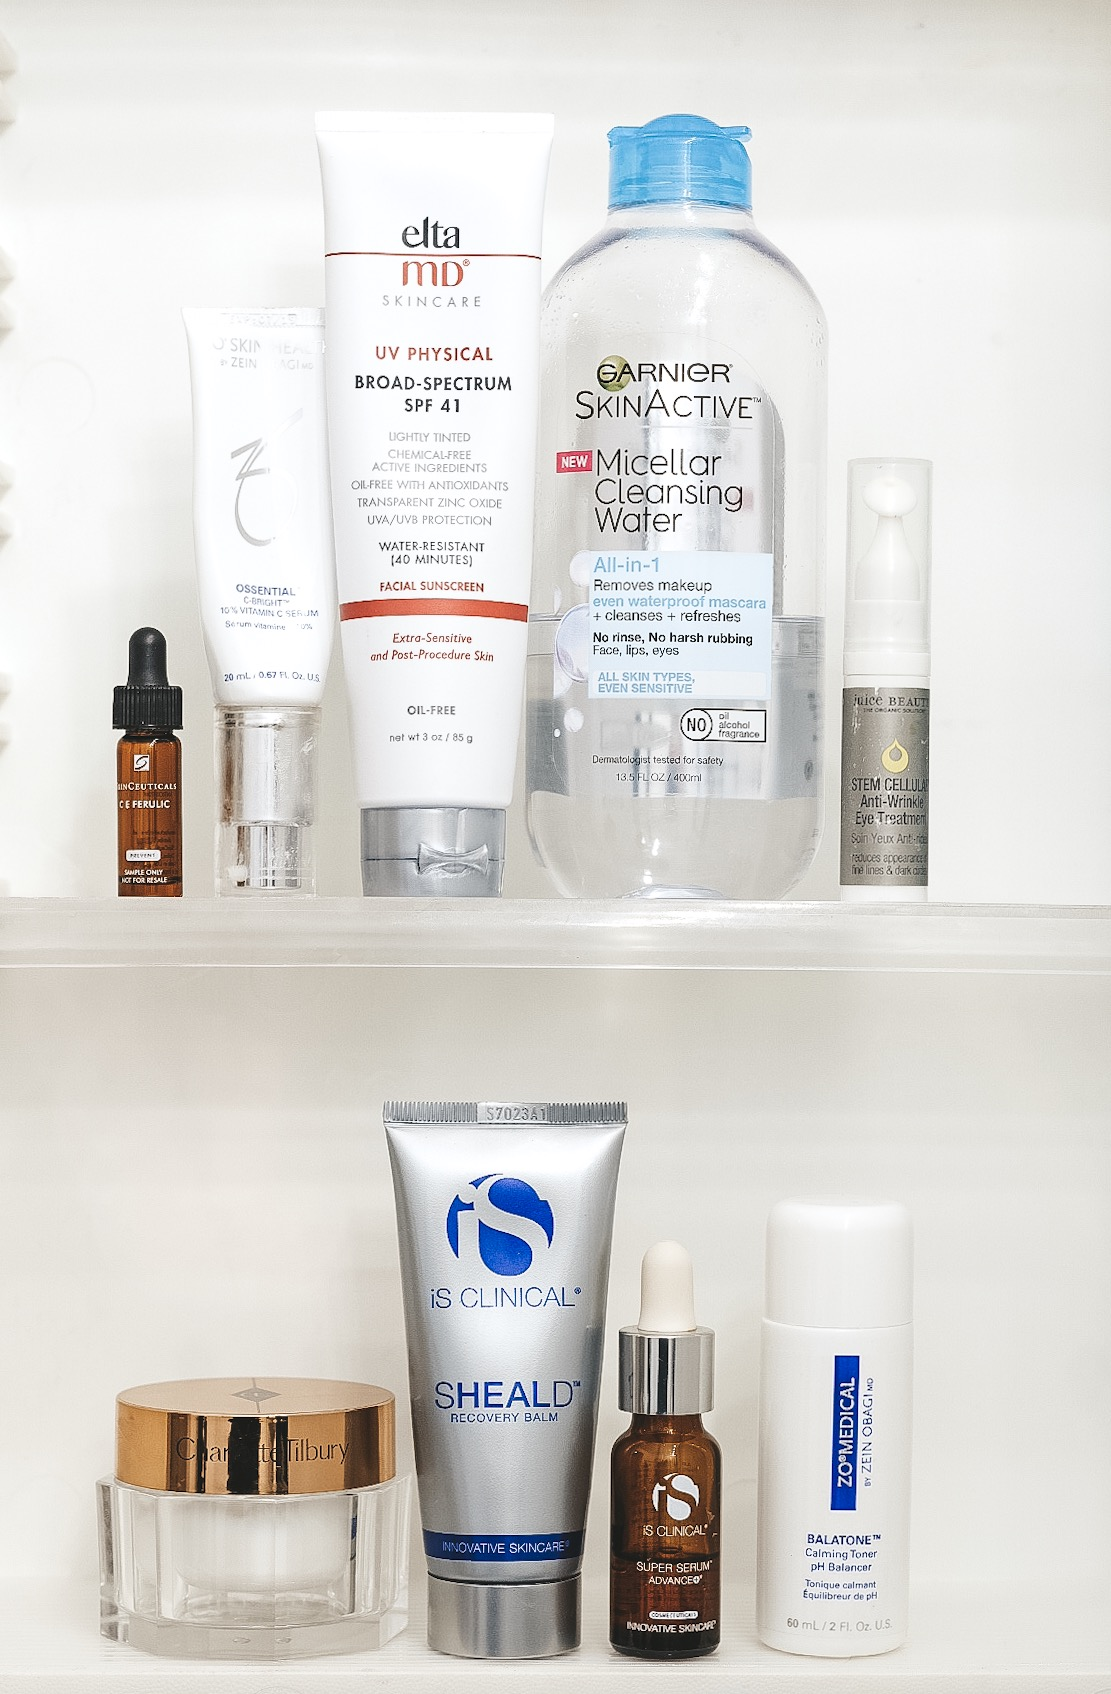 Postpartum skincare routine to minimize melasma from pregnancy.  Breastfeeding safe skincare routine.